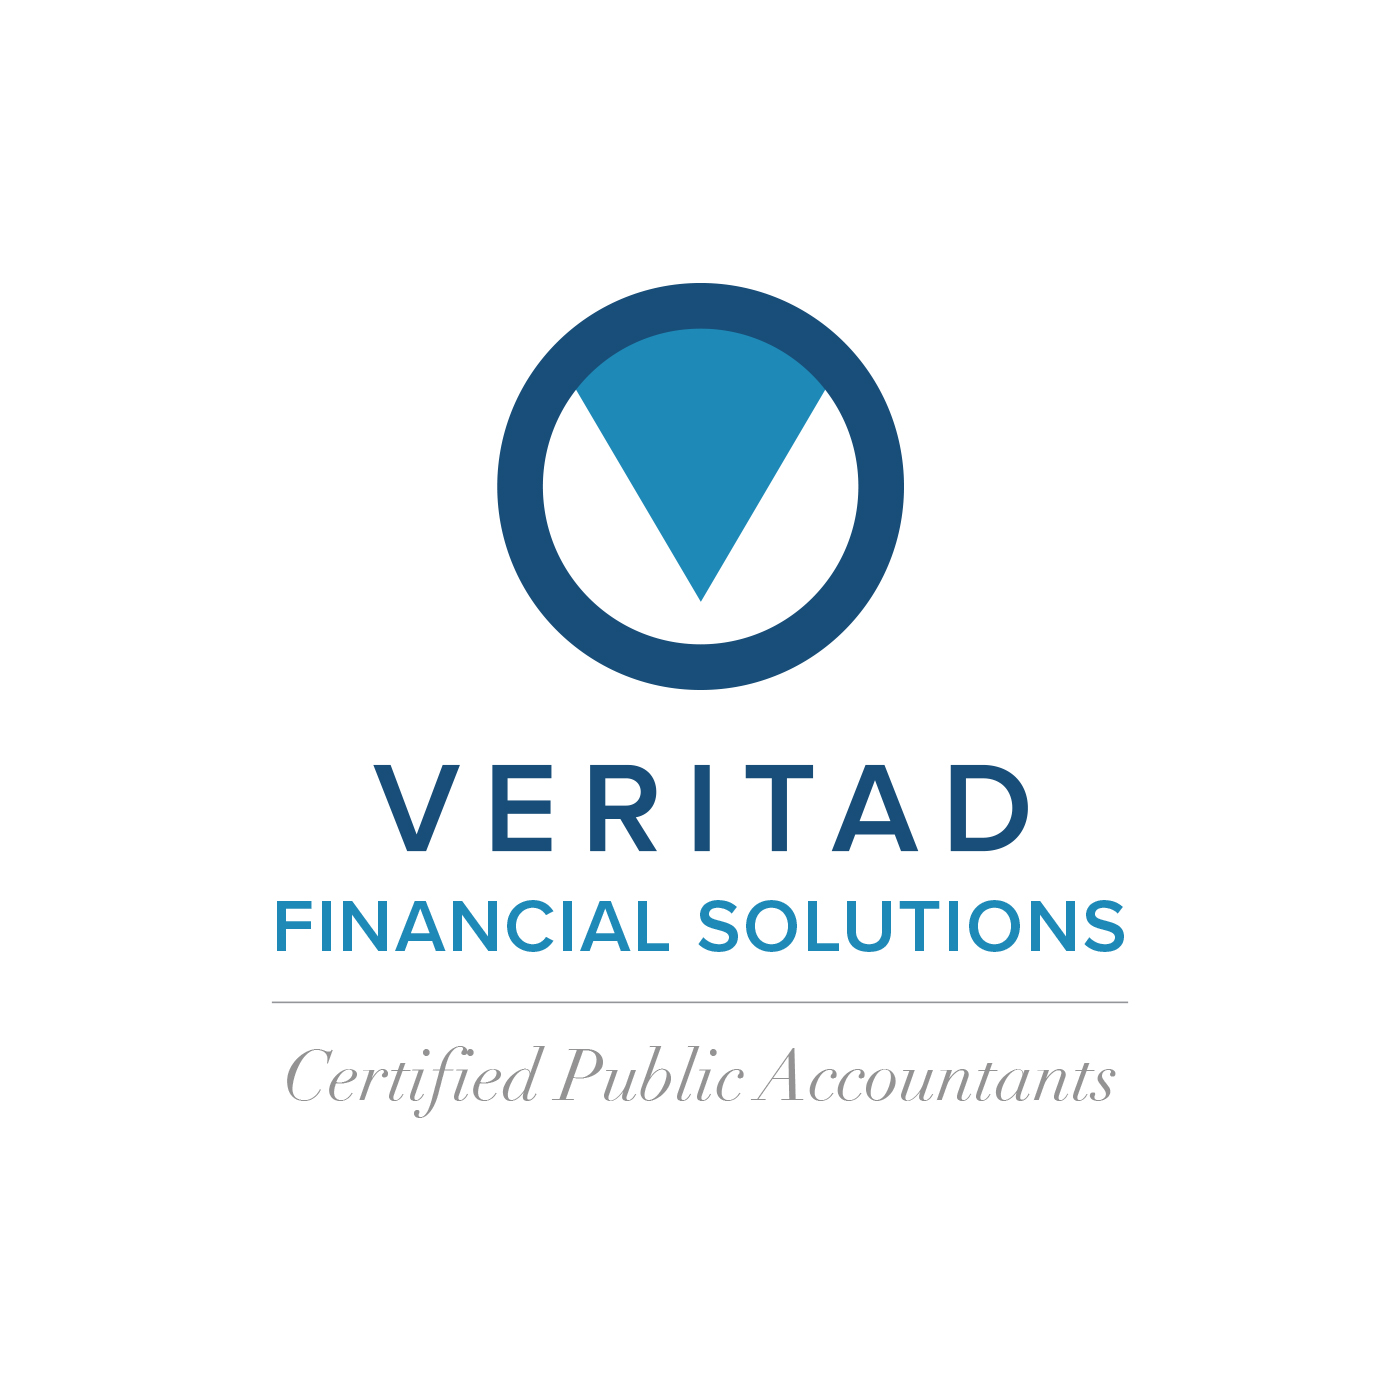 veritad-logo copy@2x